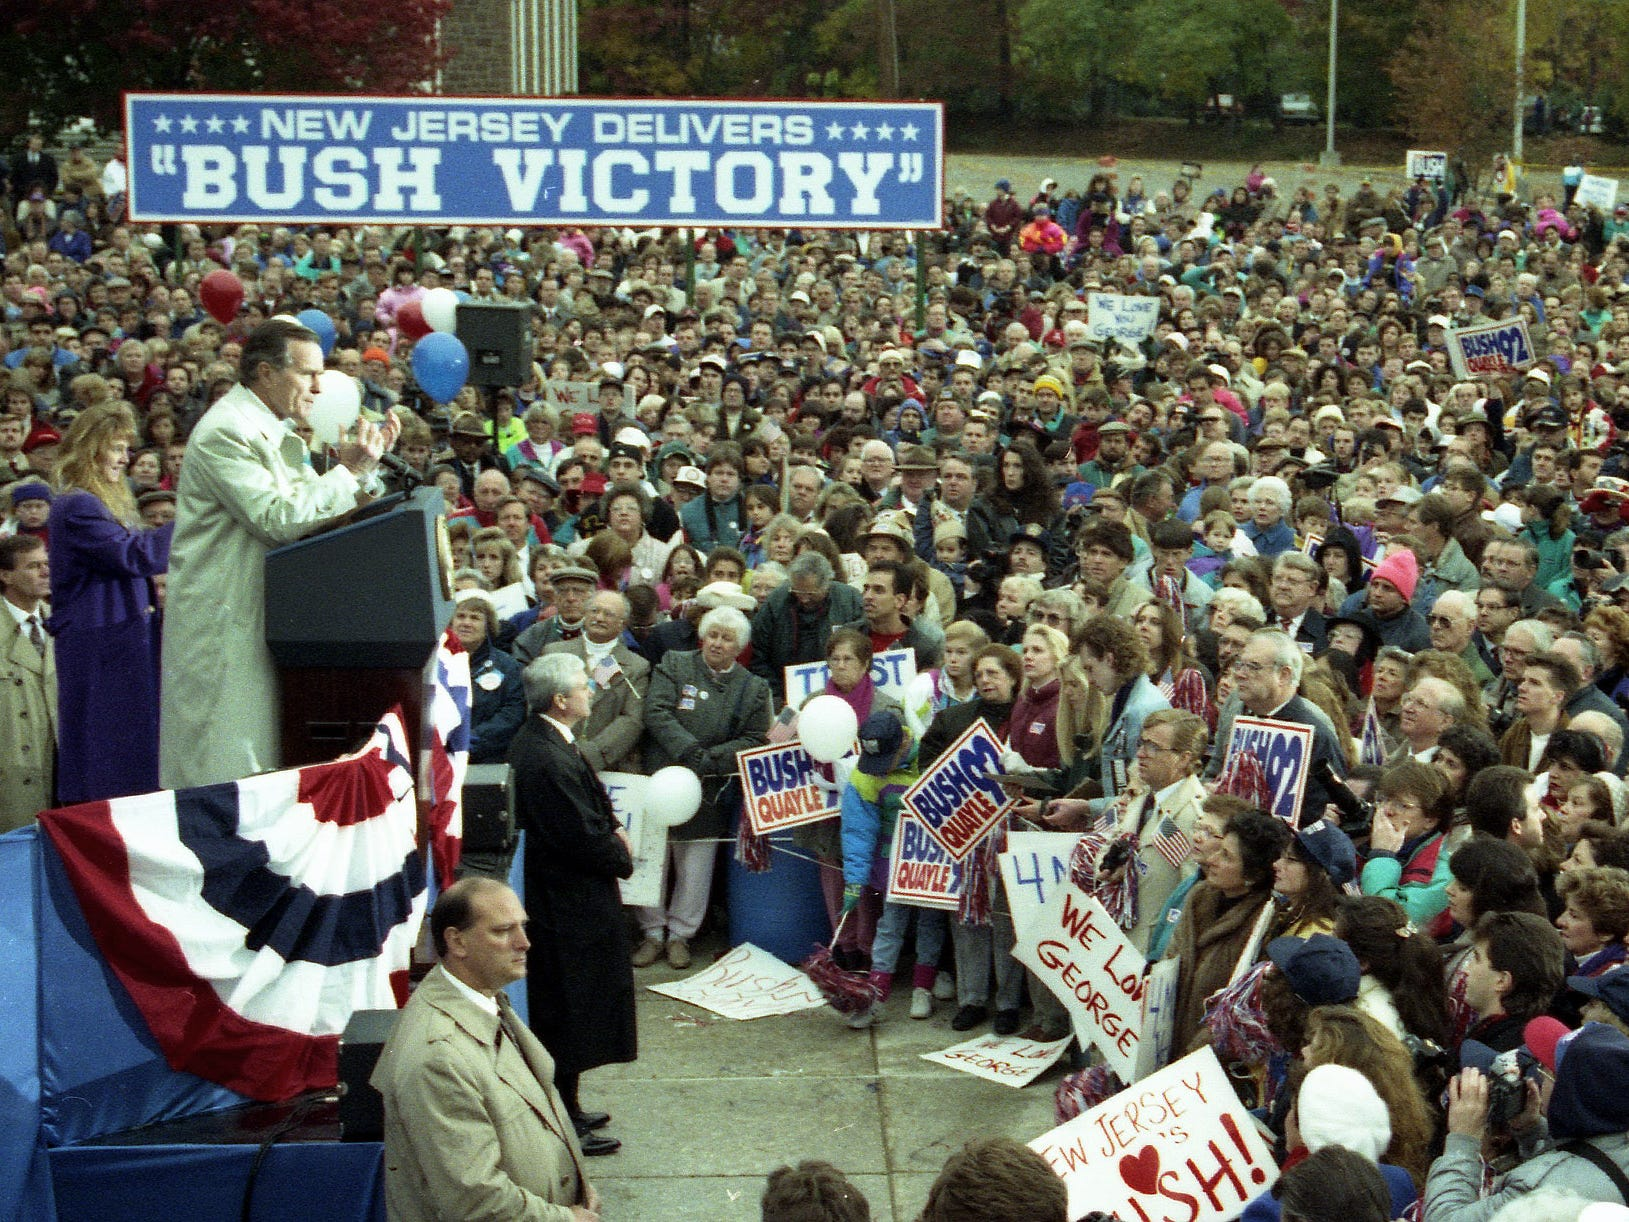 President George HW Bush speaks during an election eve rally in Madison, NJ, on November 2, 1992.